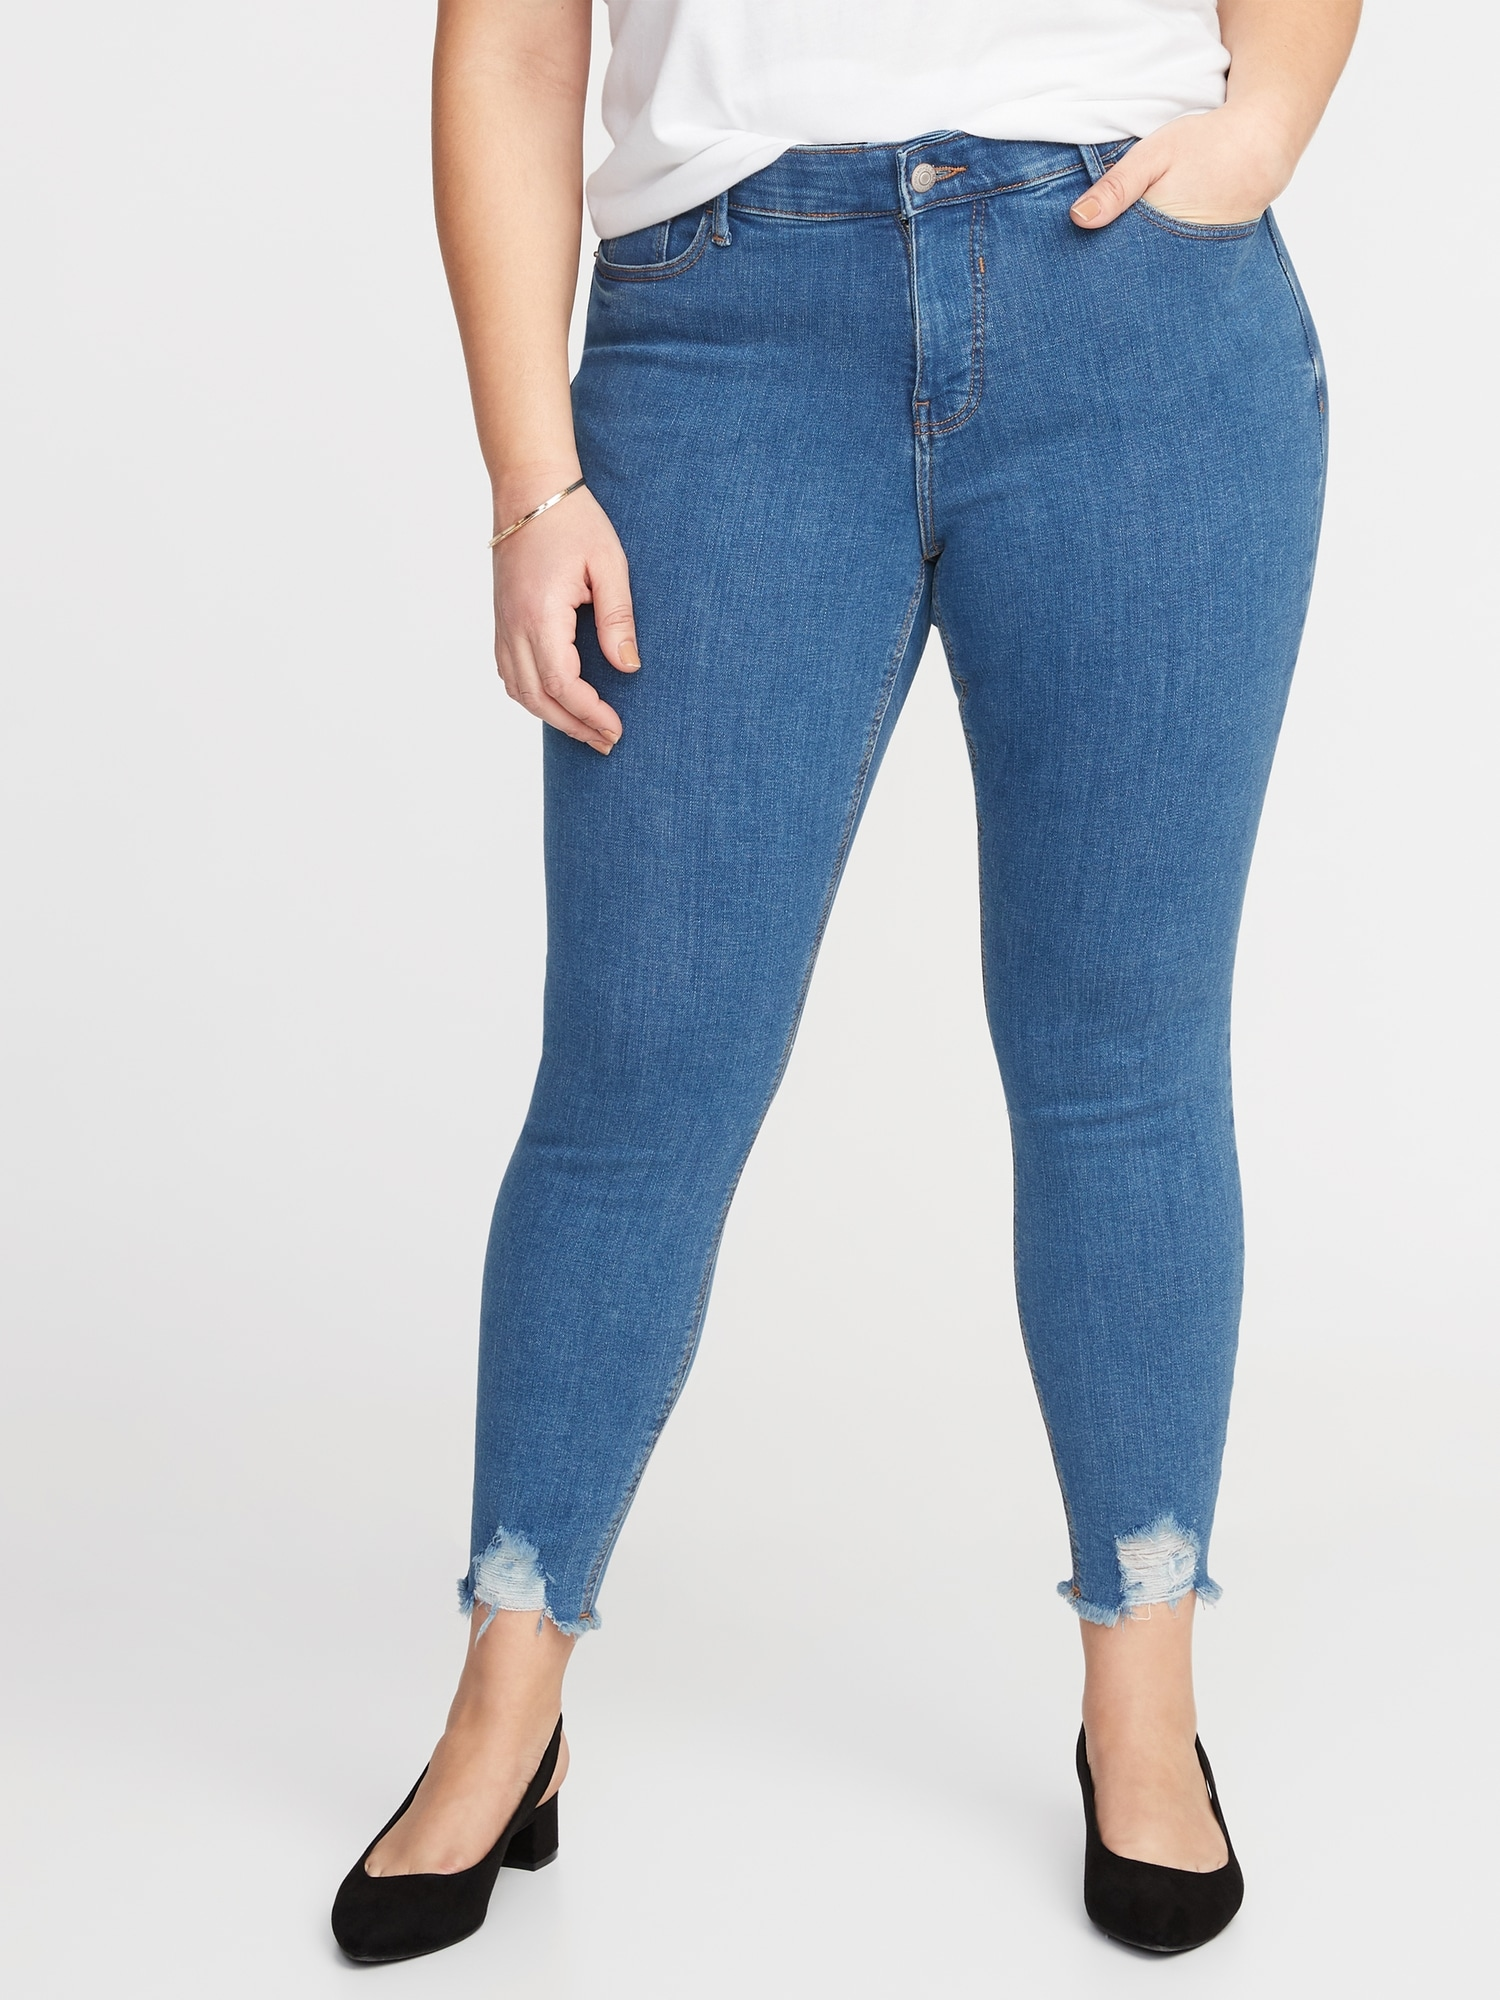 c41259805c418d High-Rise Secret-Slim Pockets + Waistband Rockstar Plus-Size Super Skinny  Ankle Jeans